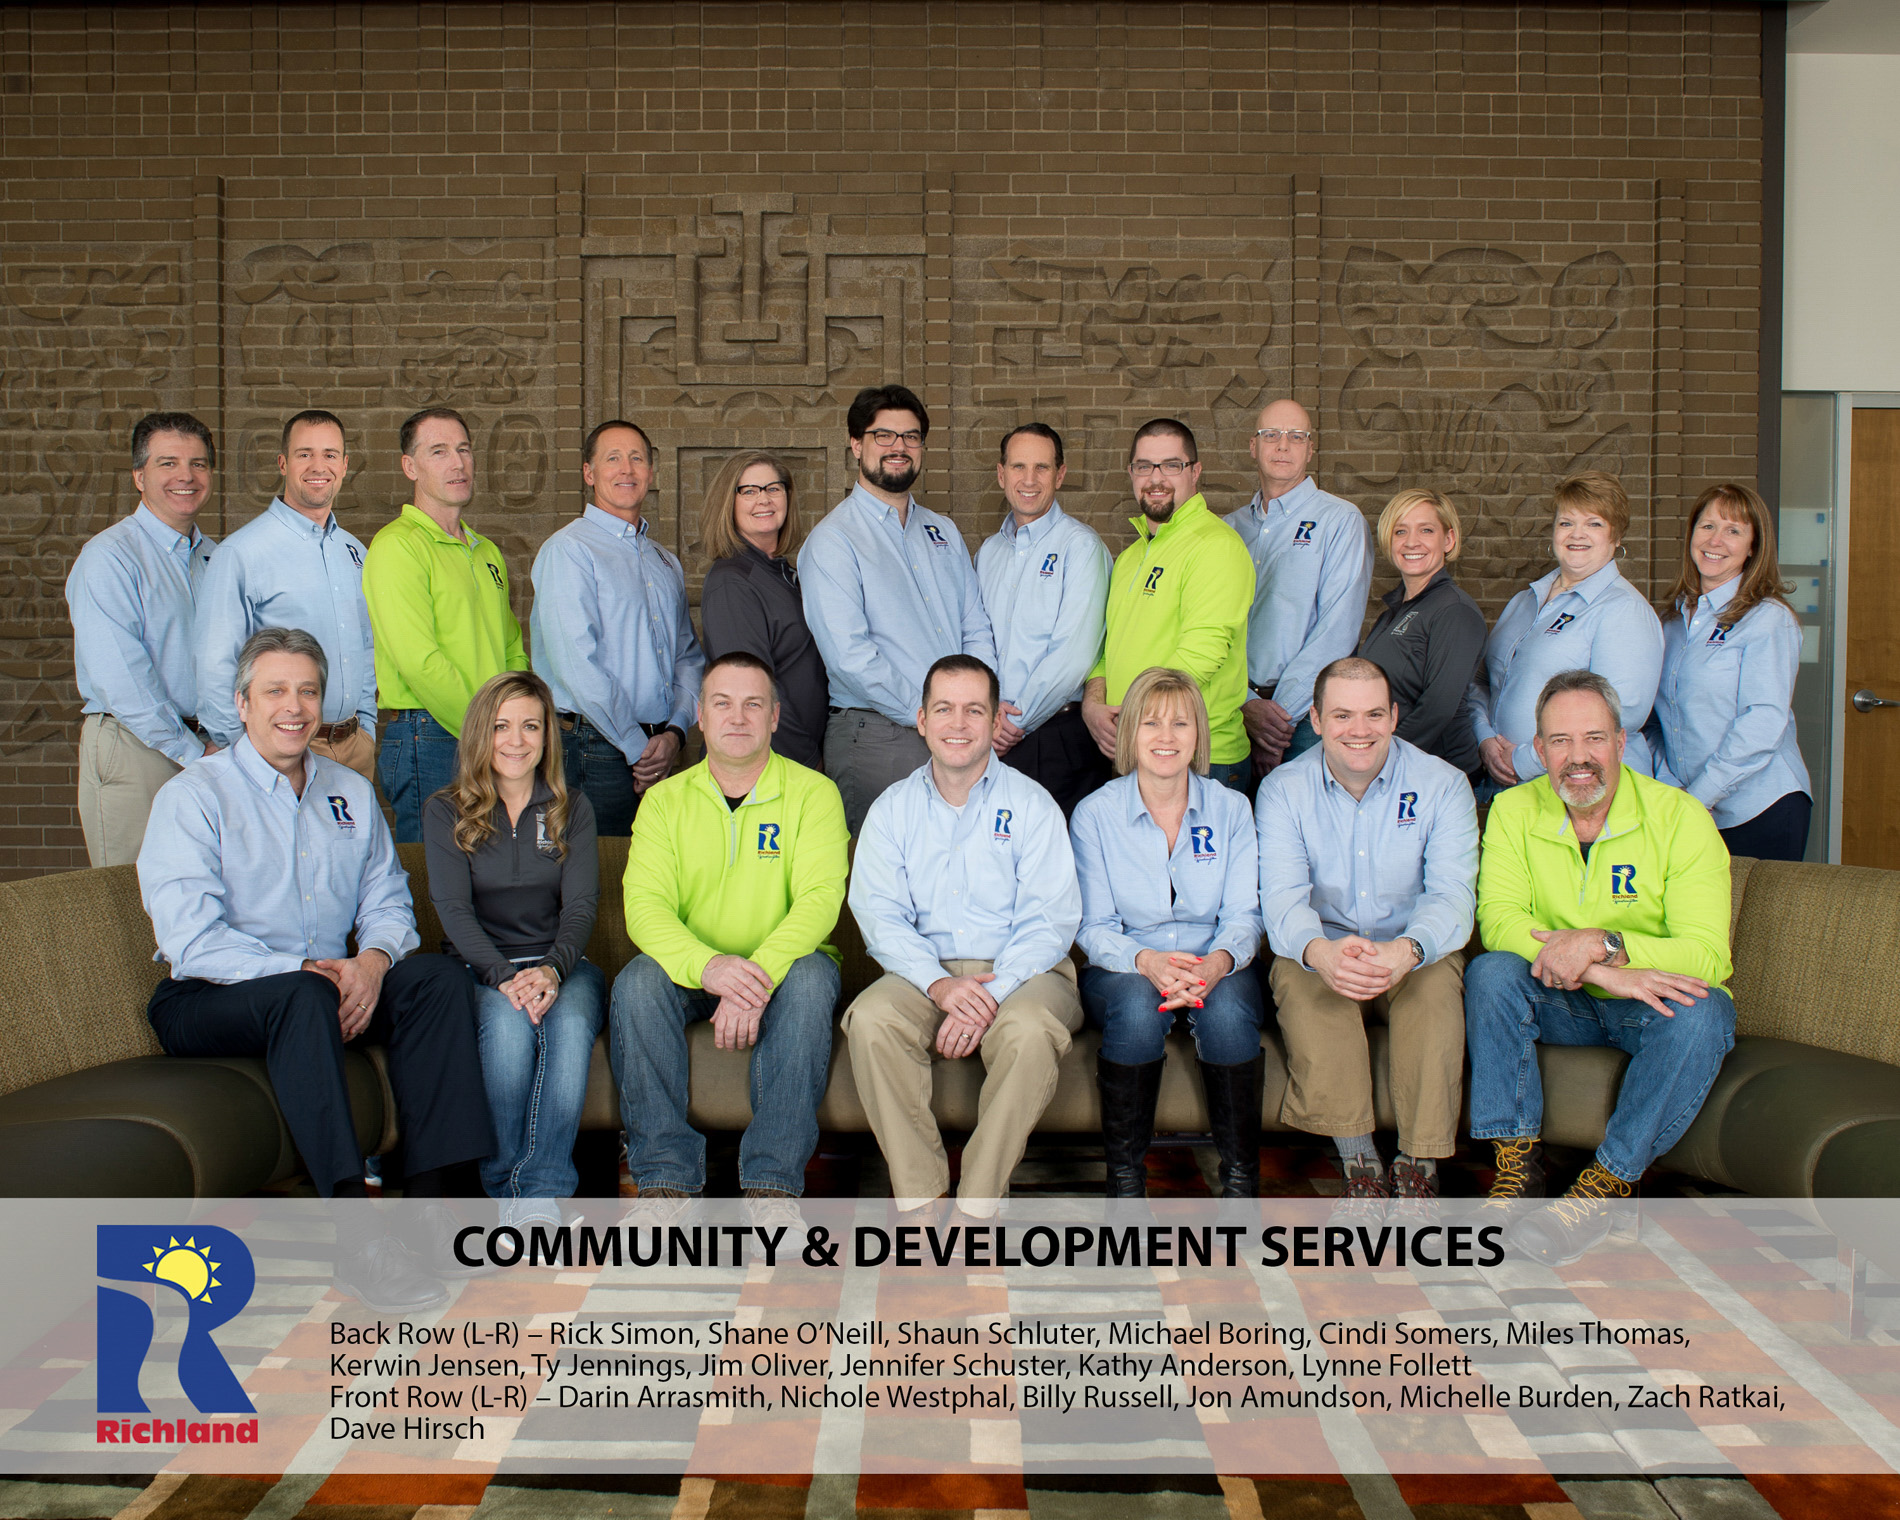 Staff Portrait for the City of Richland